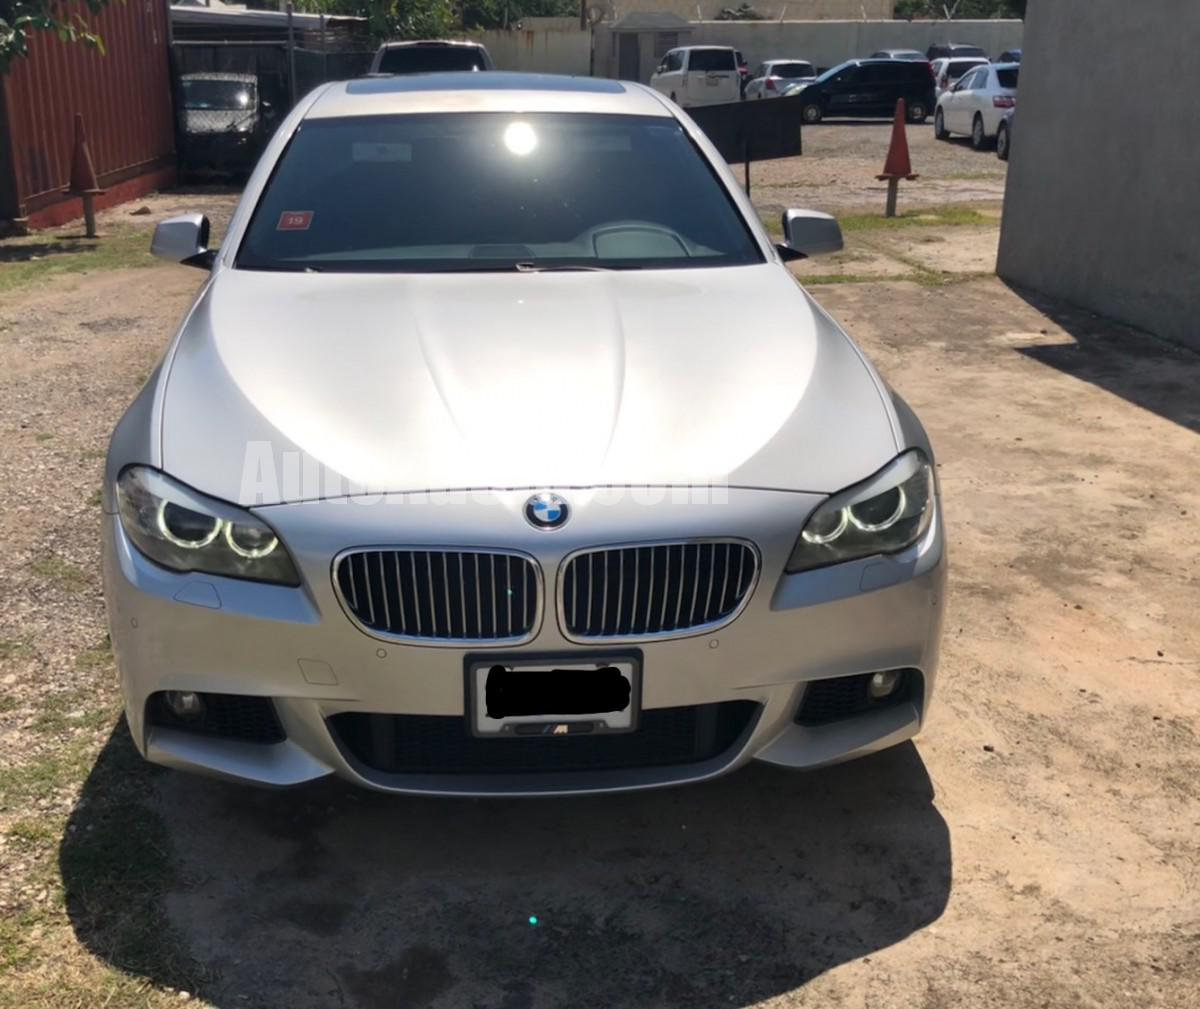 1988 Bmw 535i For Sale: 2013 BMW 535i M Sport For Sale In Kingston / St. Andrew